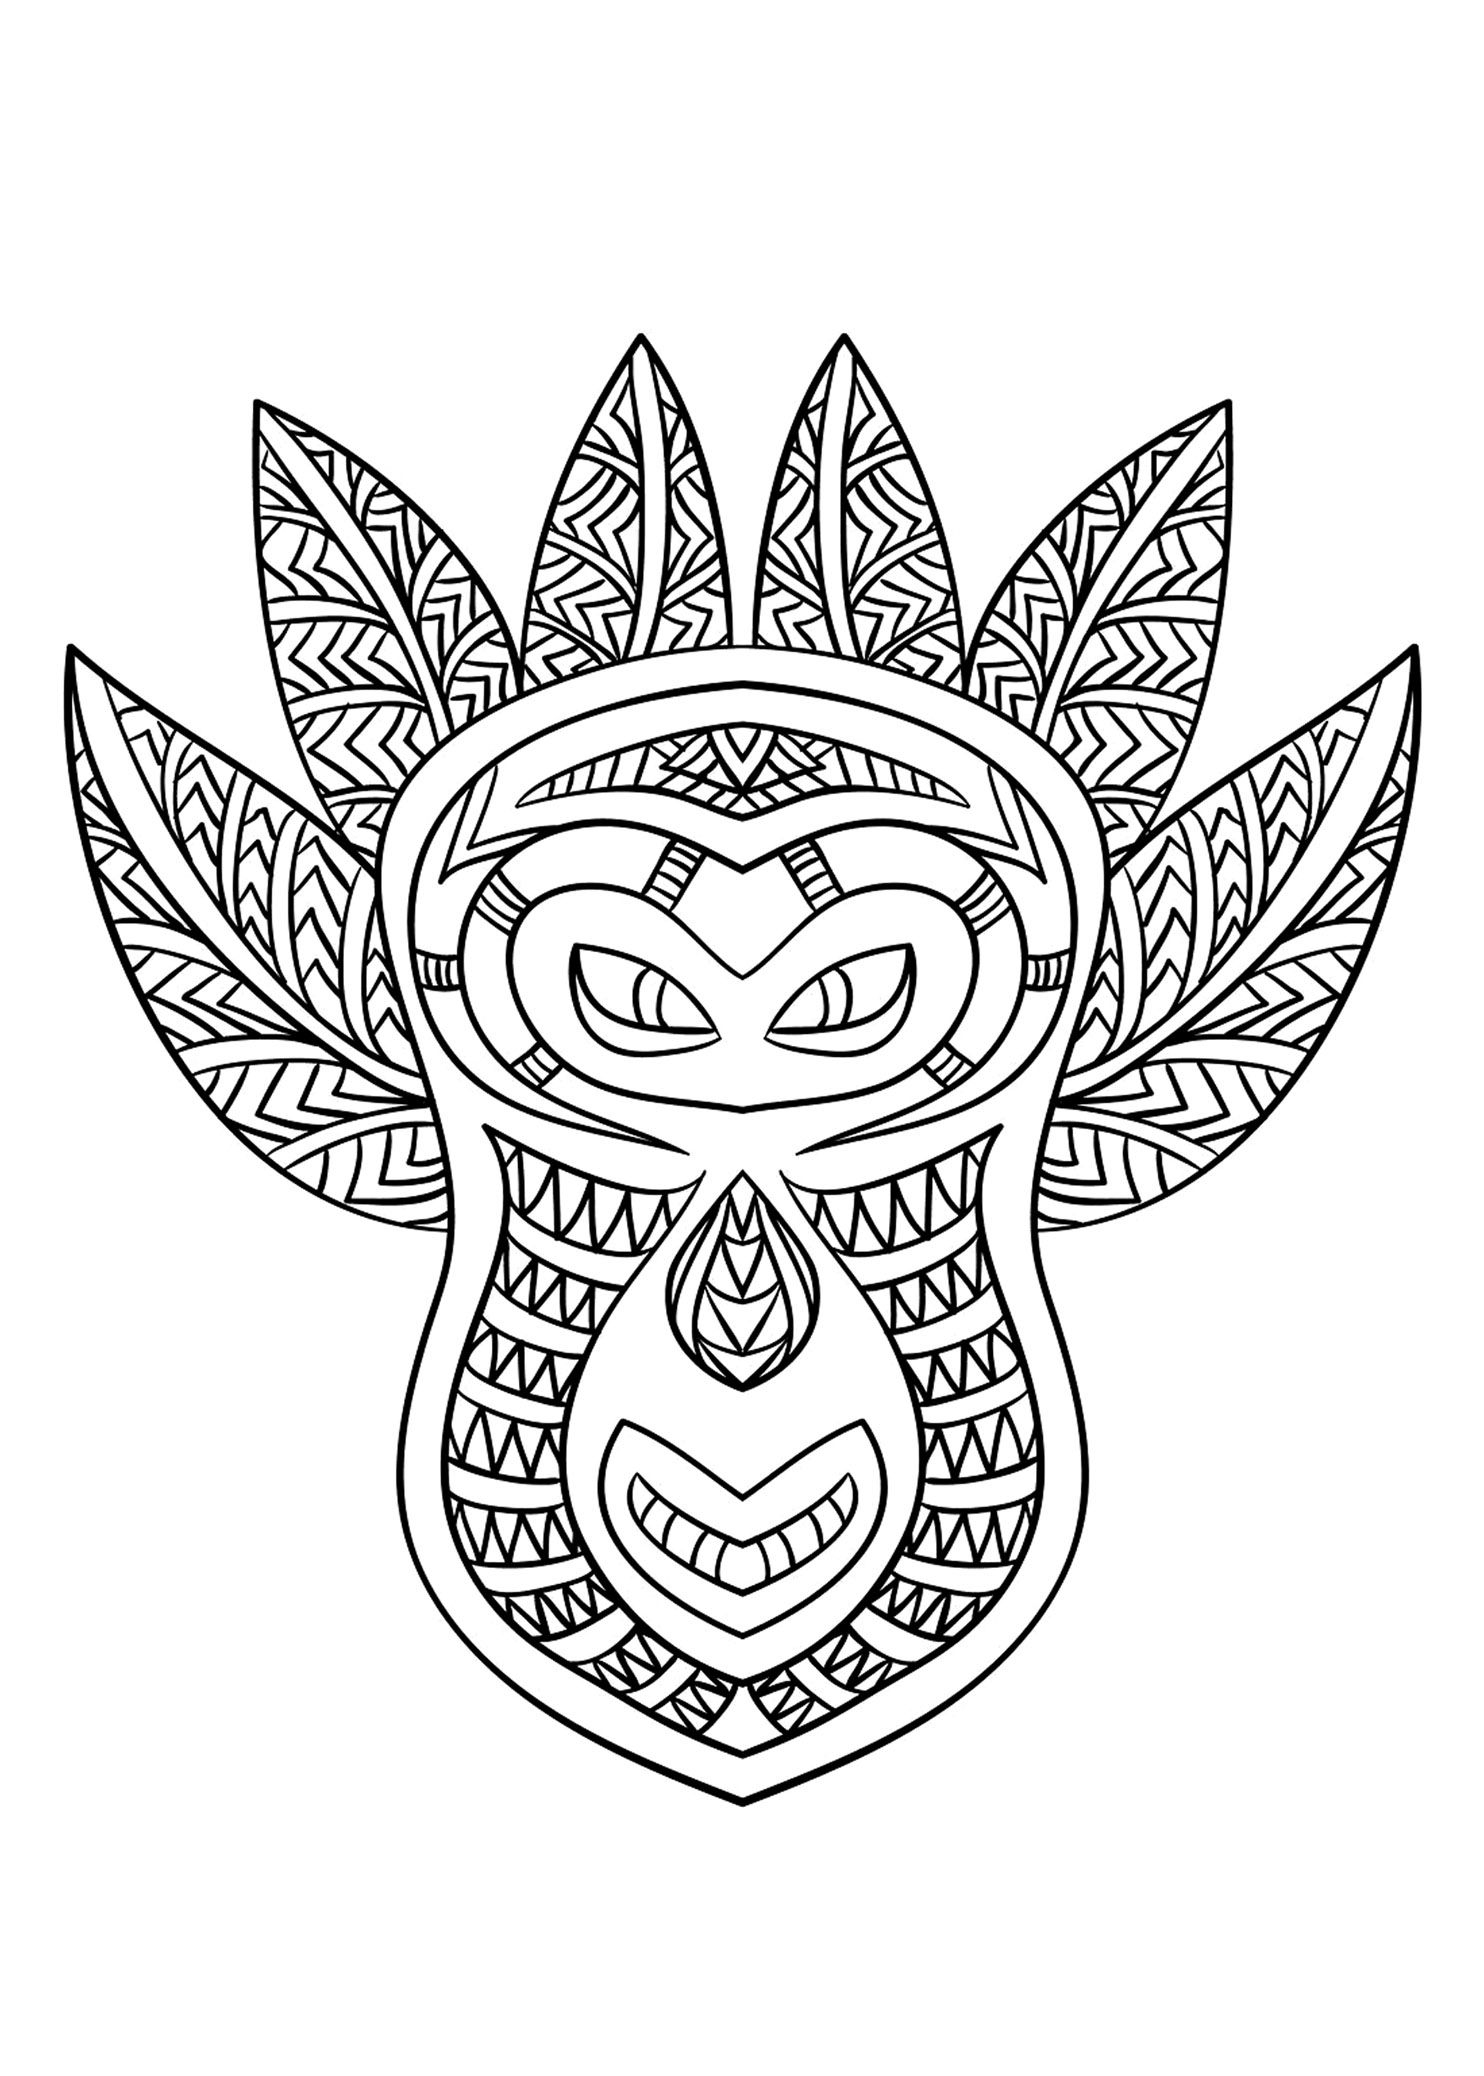 Free Coloring Page Coloring-Adult-African-Mask-6. Coloring concernant Dessin Africain A Colorier